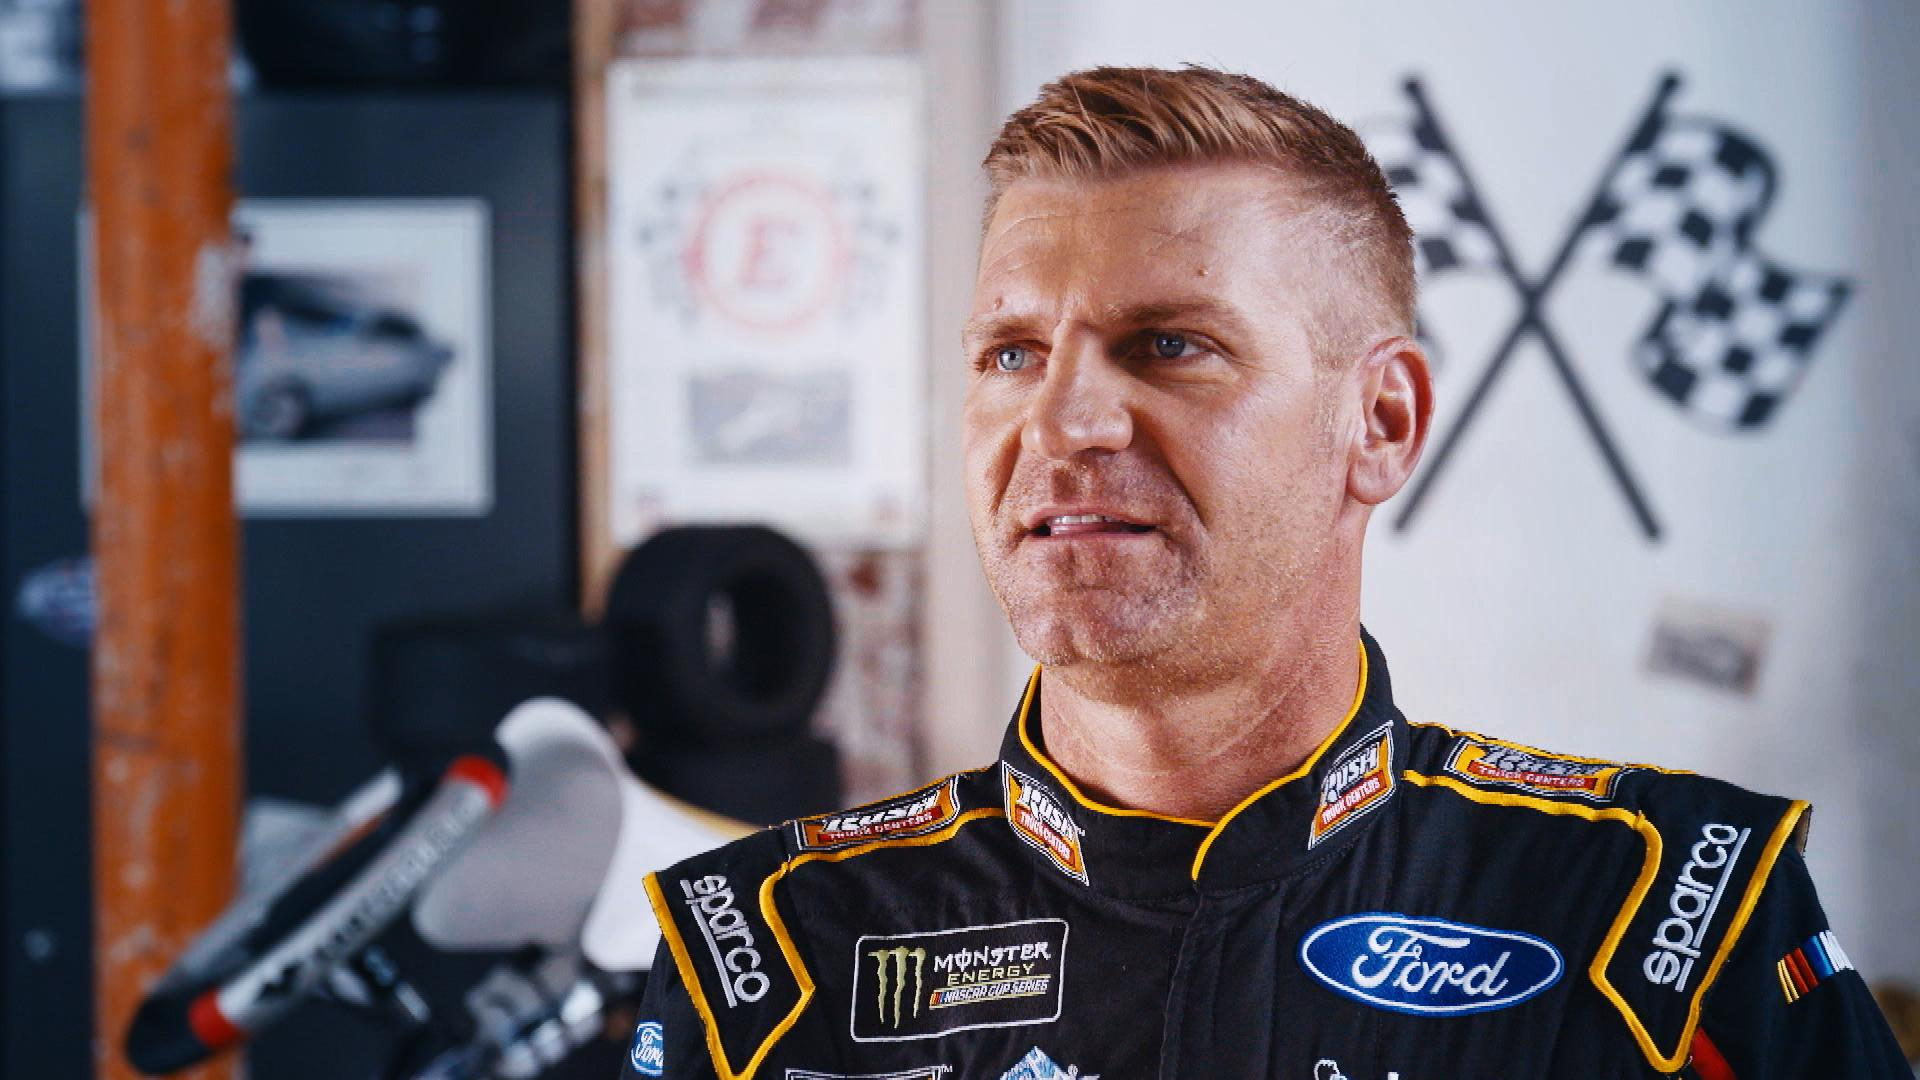 NASCAR Grassroots Racing Tour: Clint Bowyer recalls early racing in